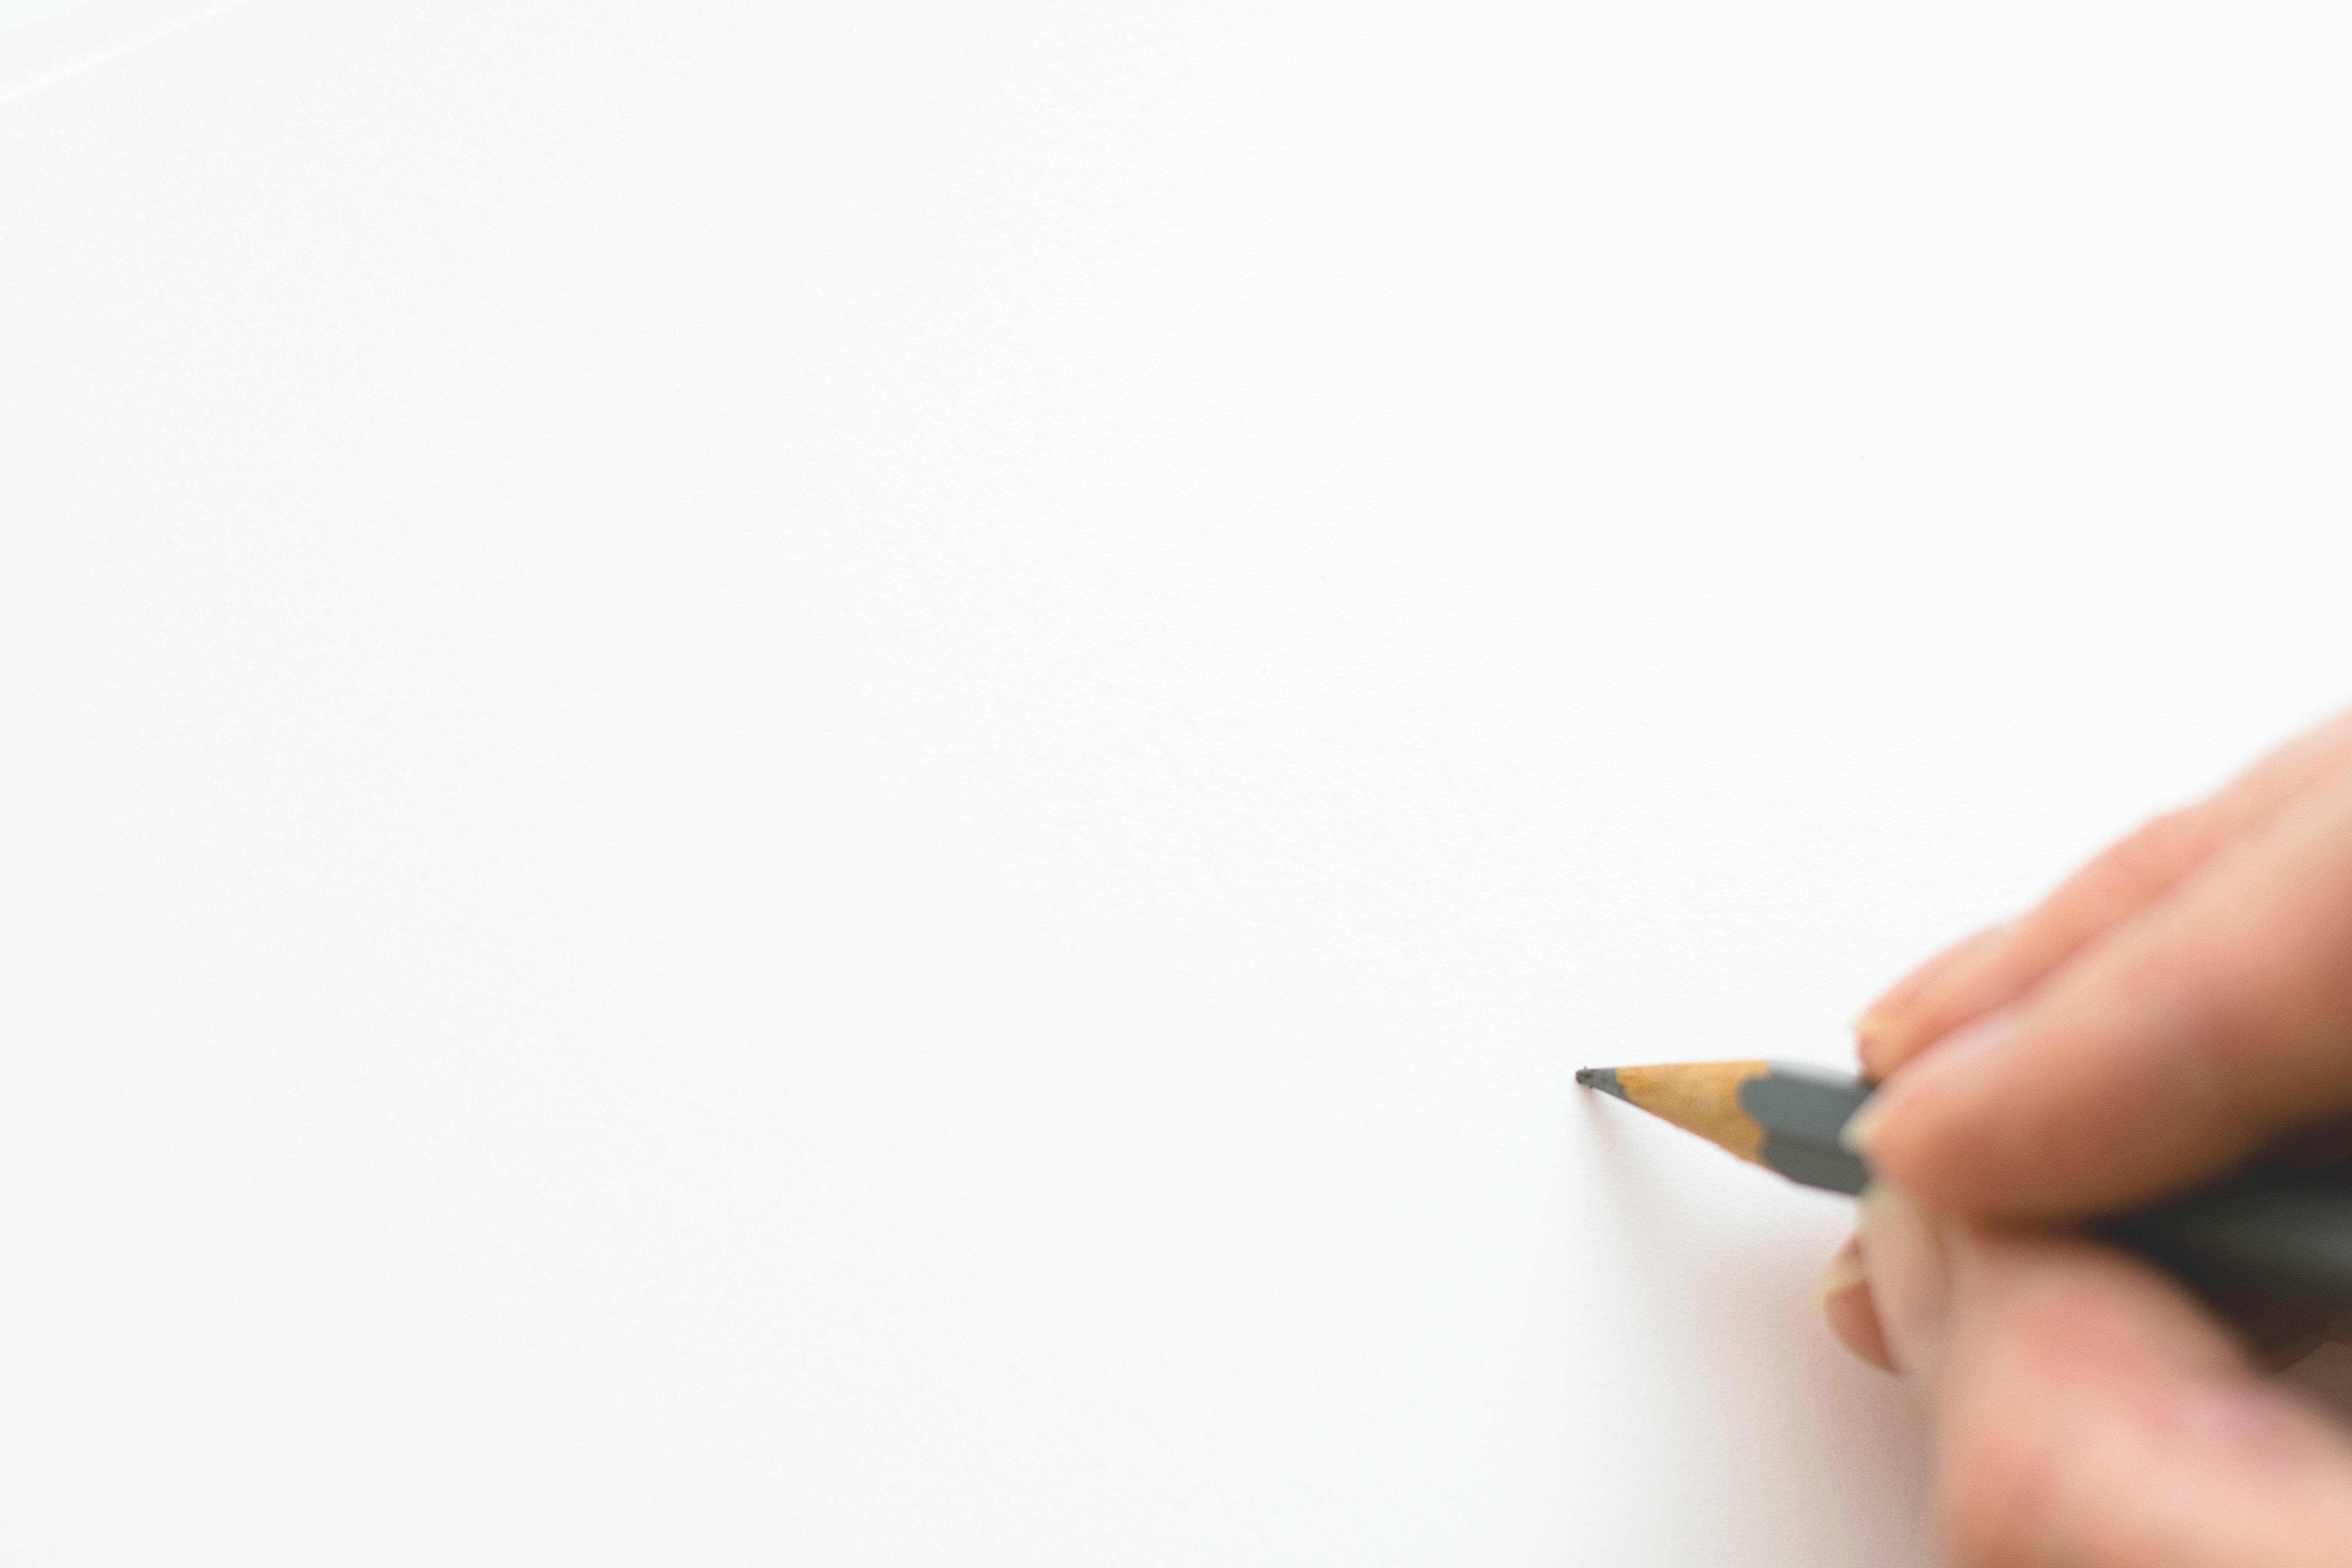 white background. close-up of hand holding pencil over white background s